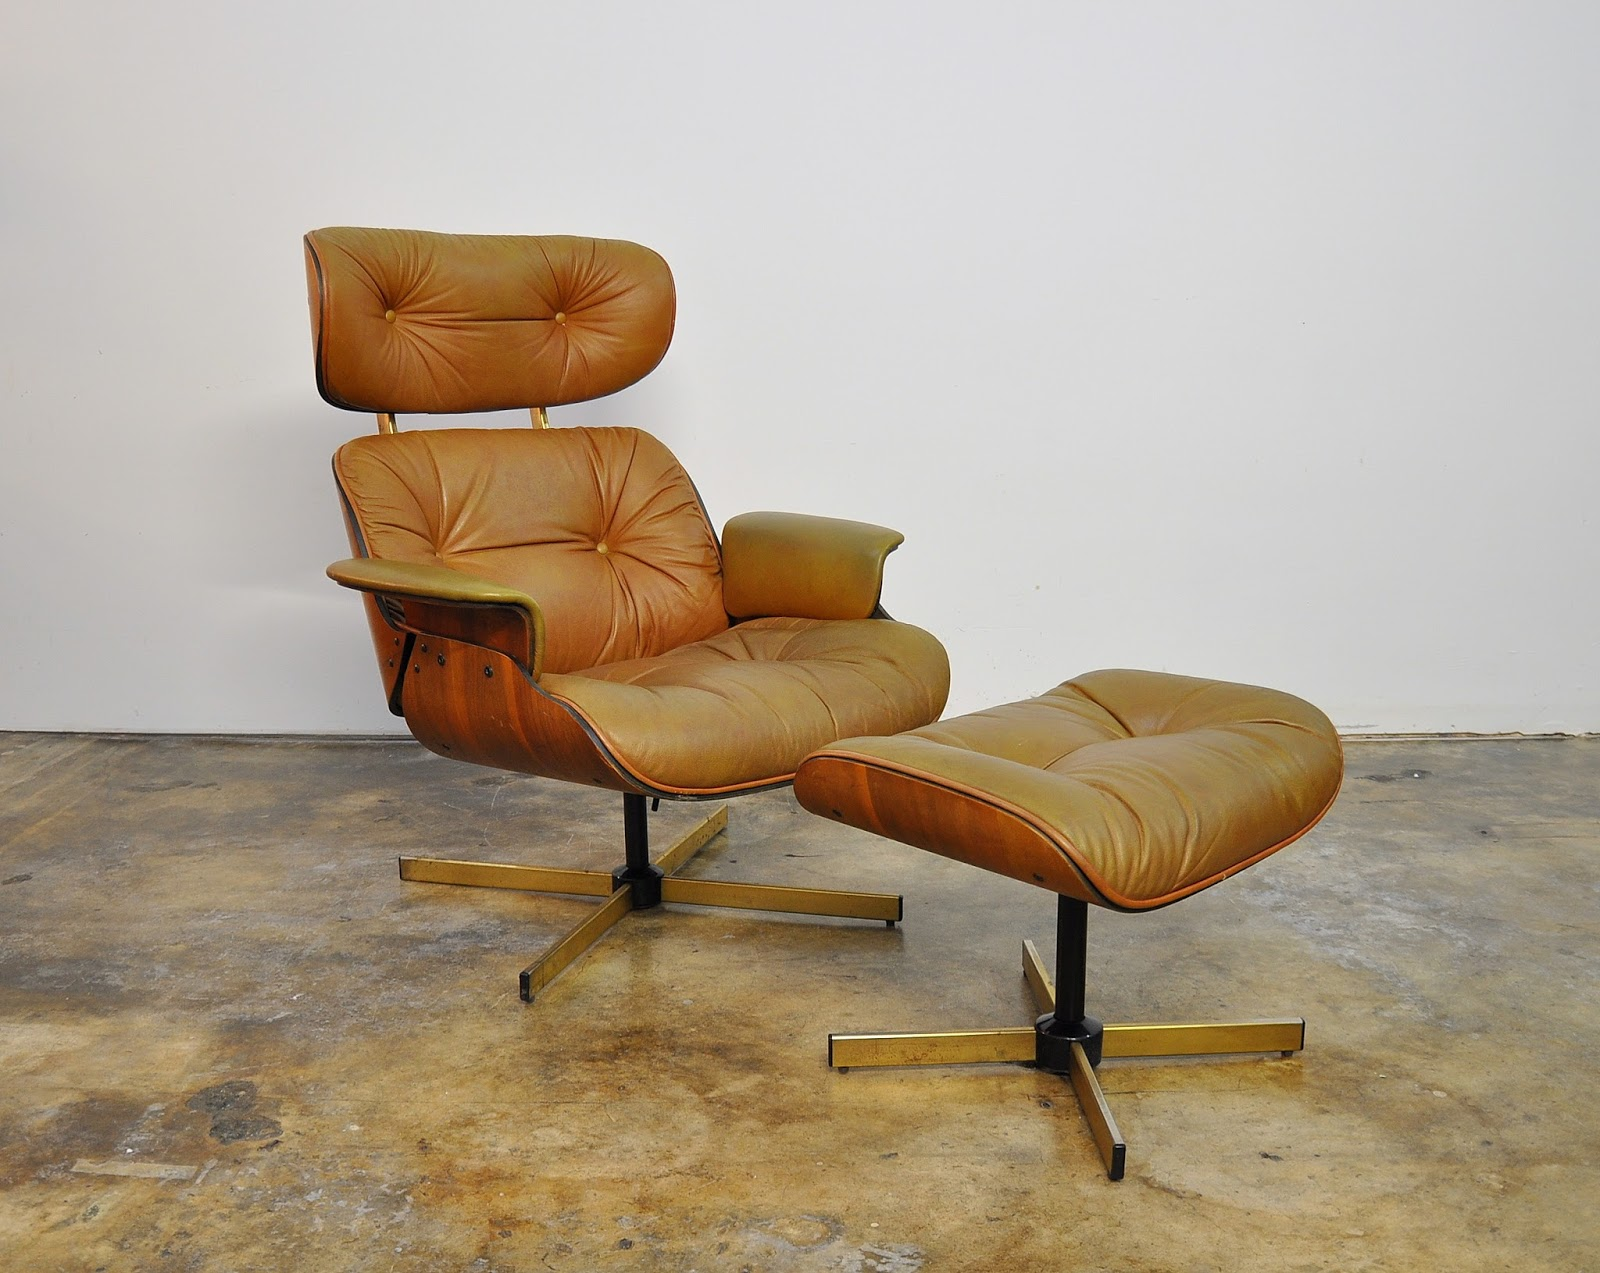 selig plycraft lounge chair parts desk uk sale select modern frank doerner eames style leather